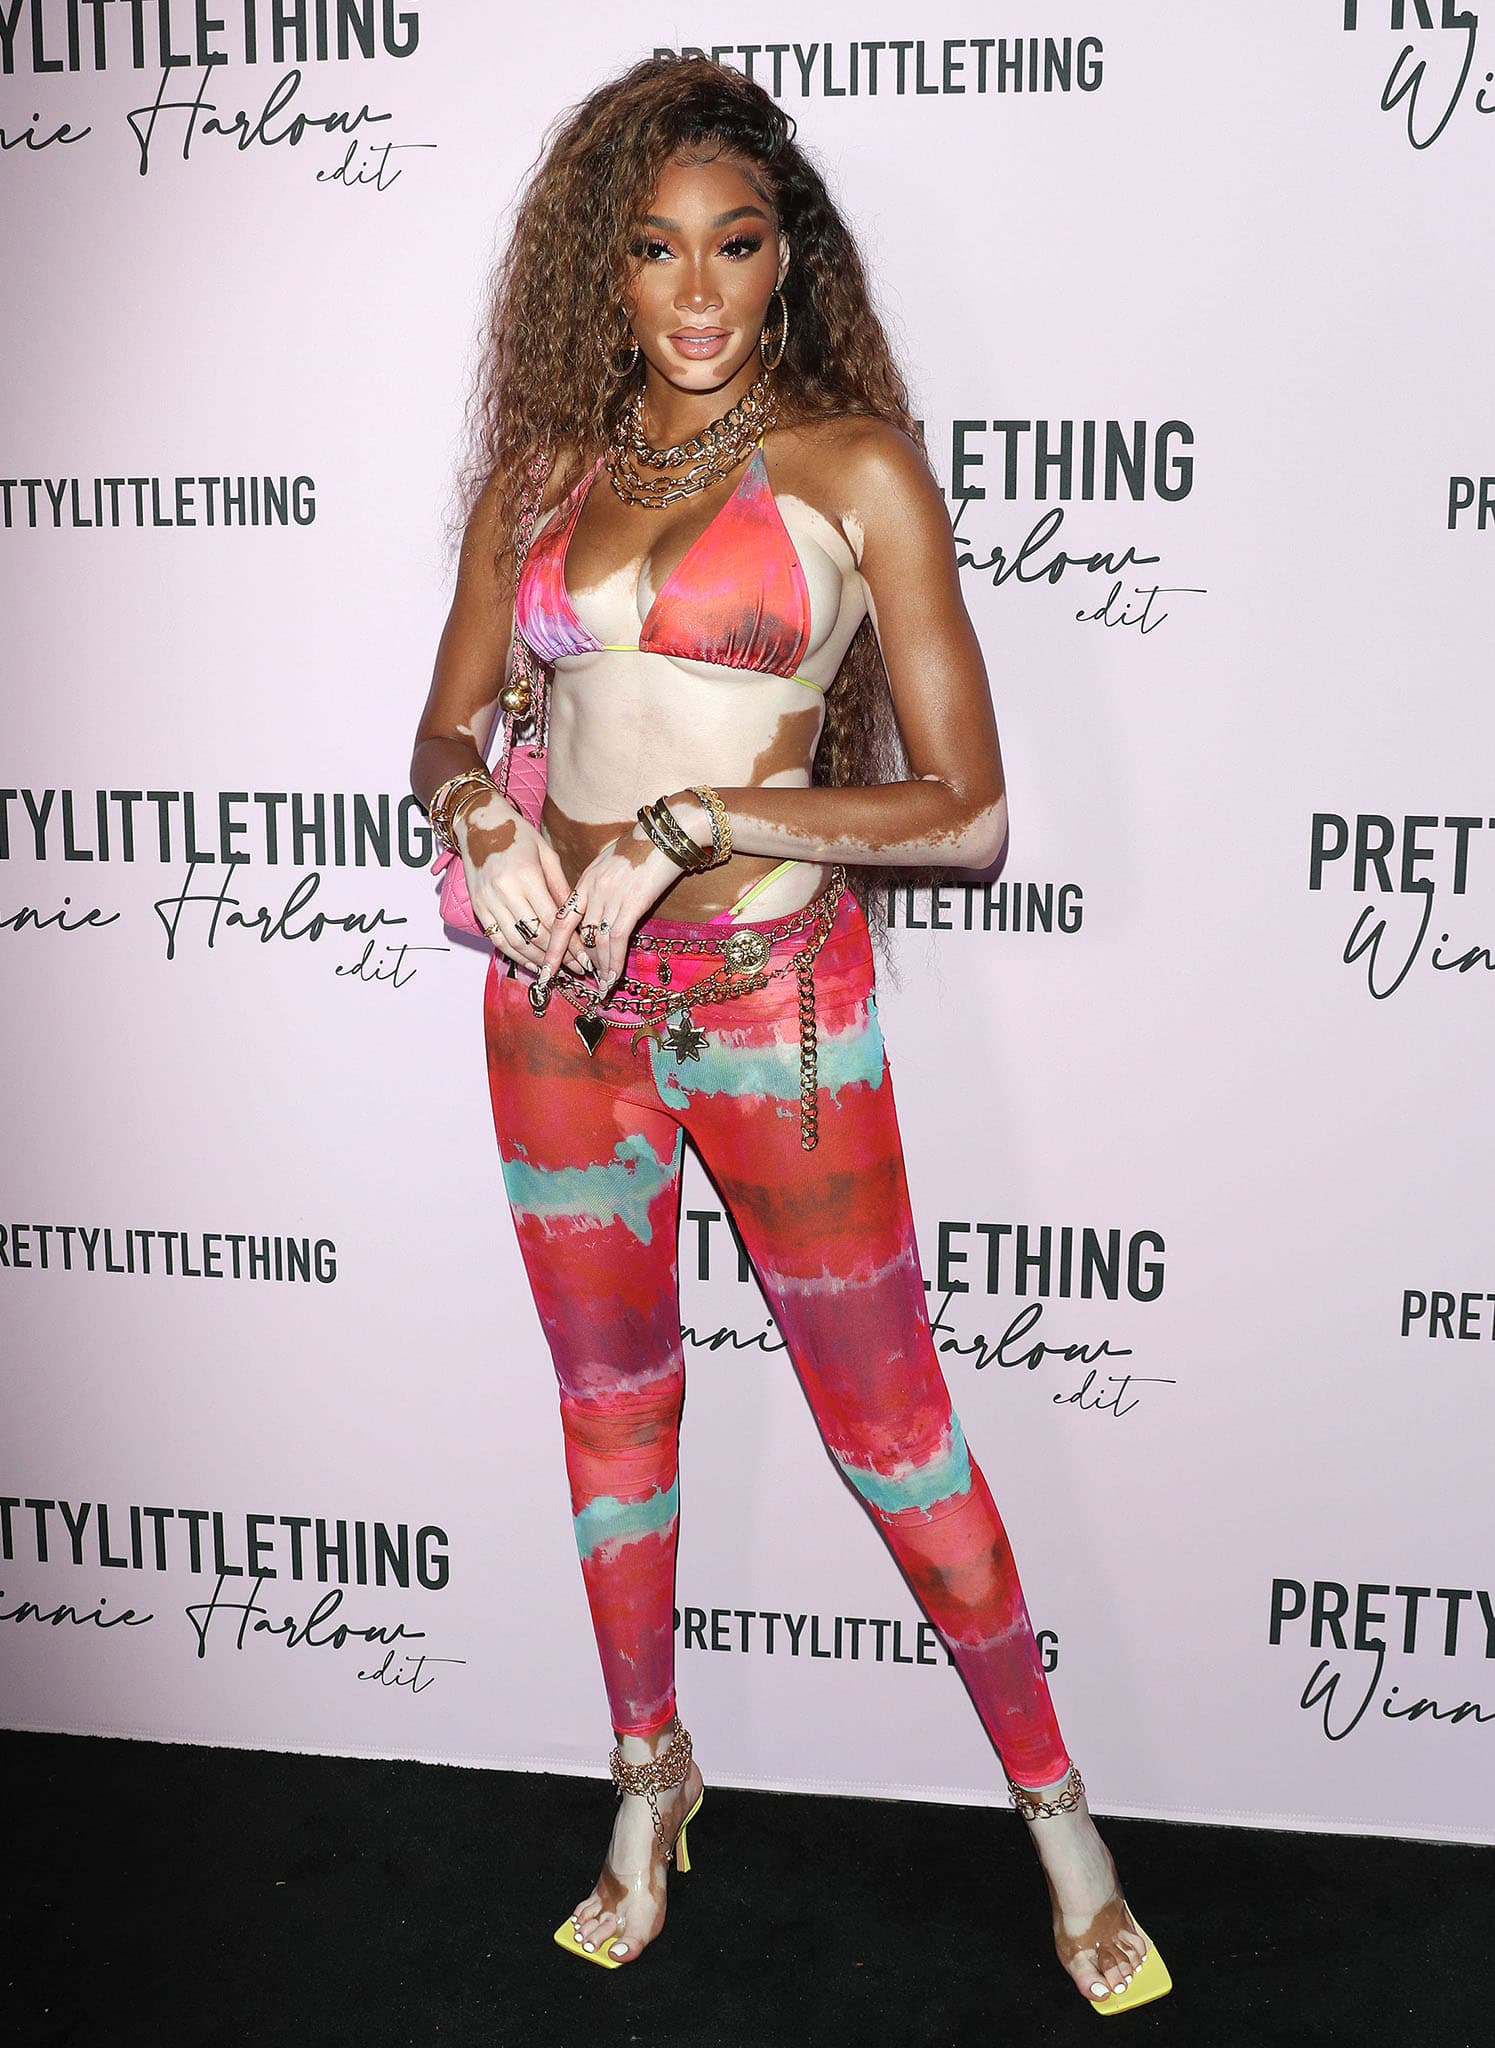 Winnie Harlow shows off her skin and enviable figure in PLT multi-print top and matching leggings